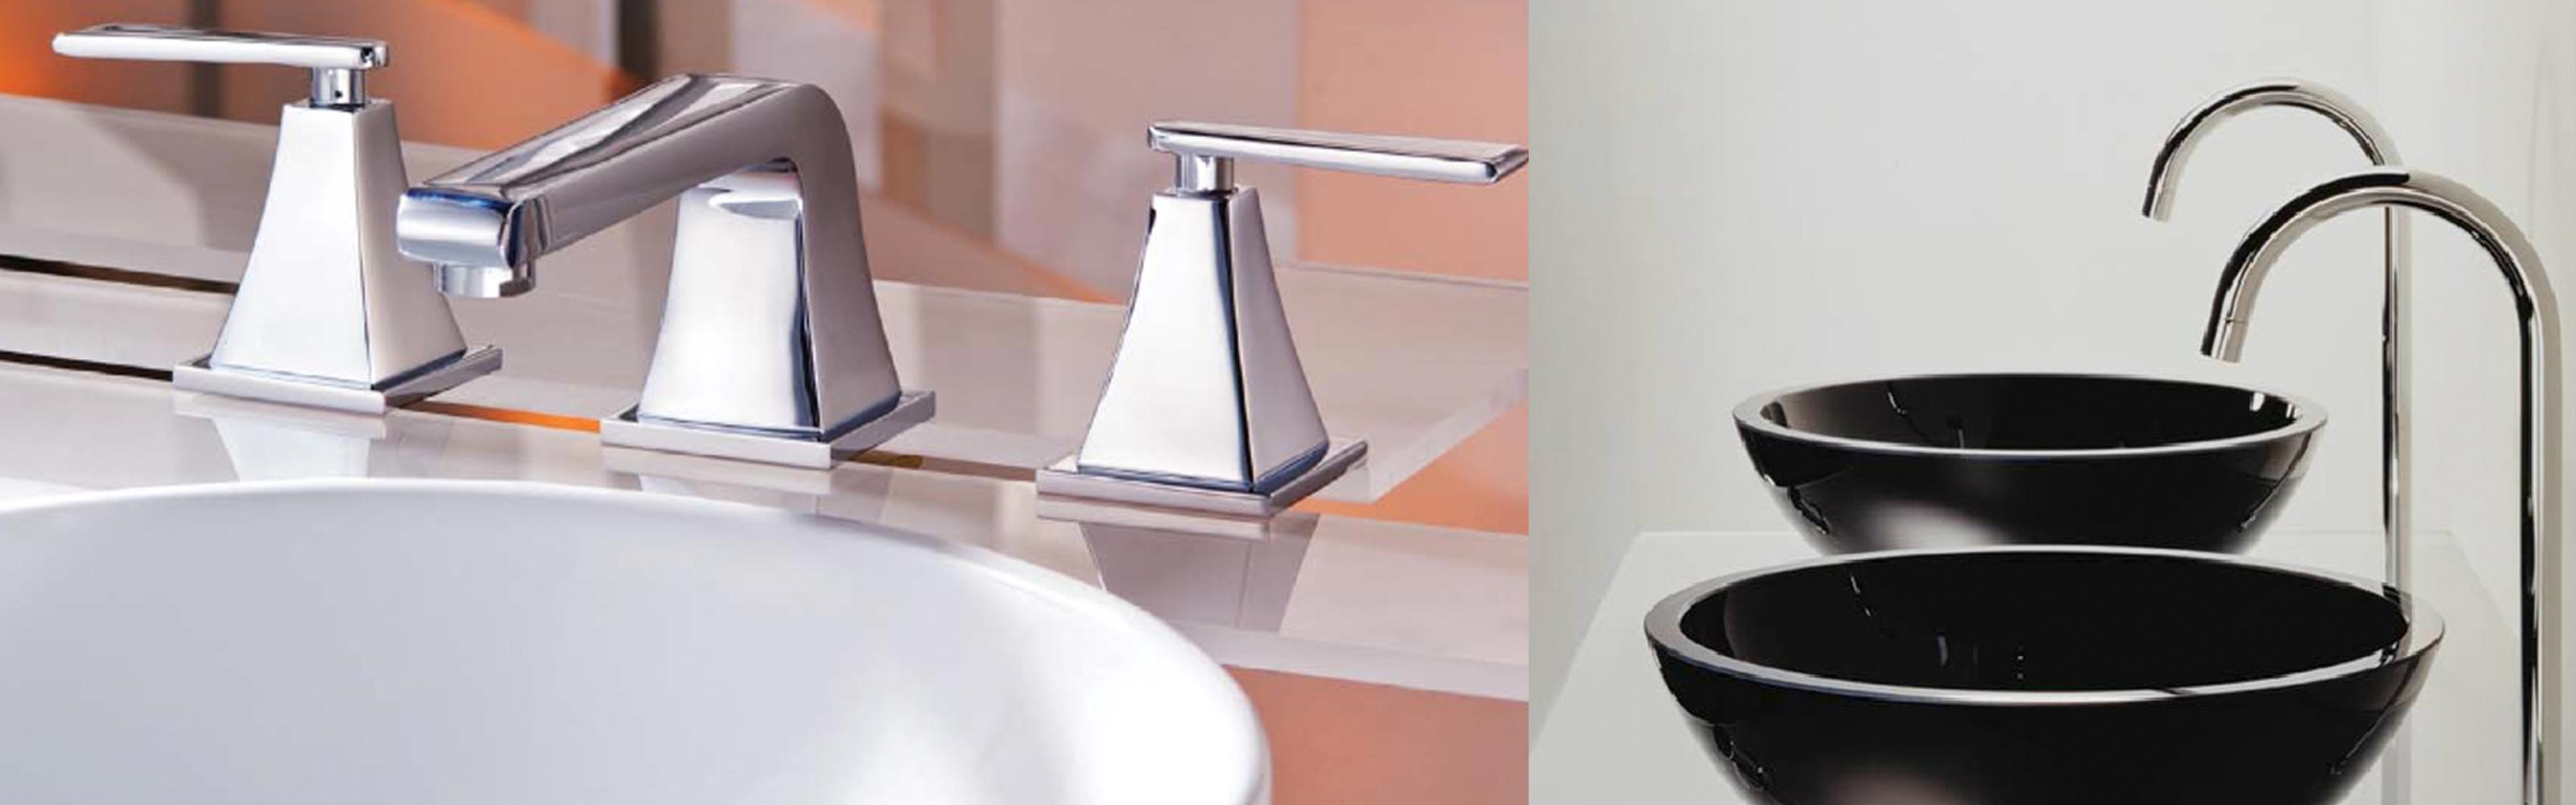 Fresh Bathroom Fixture Images